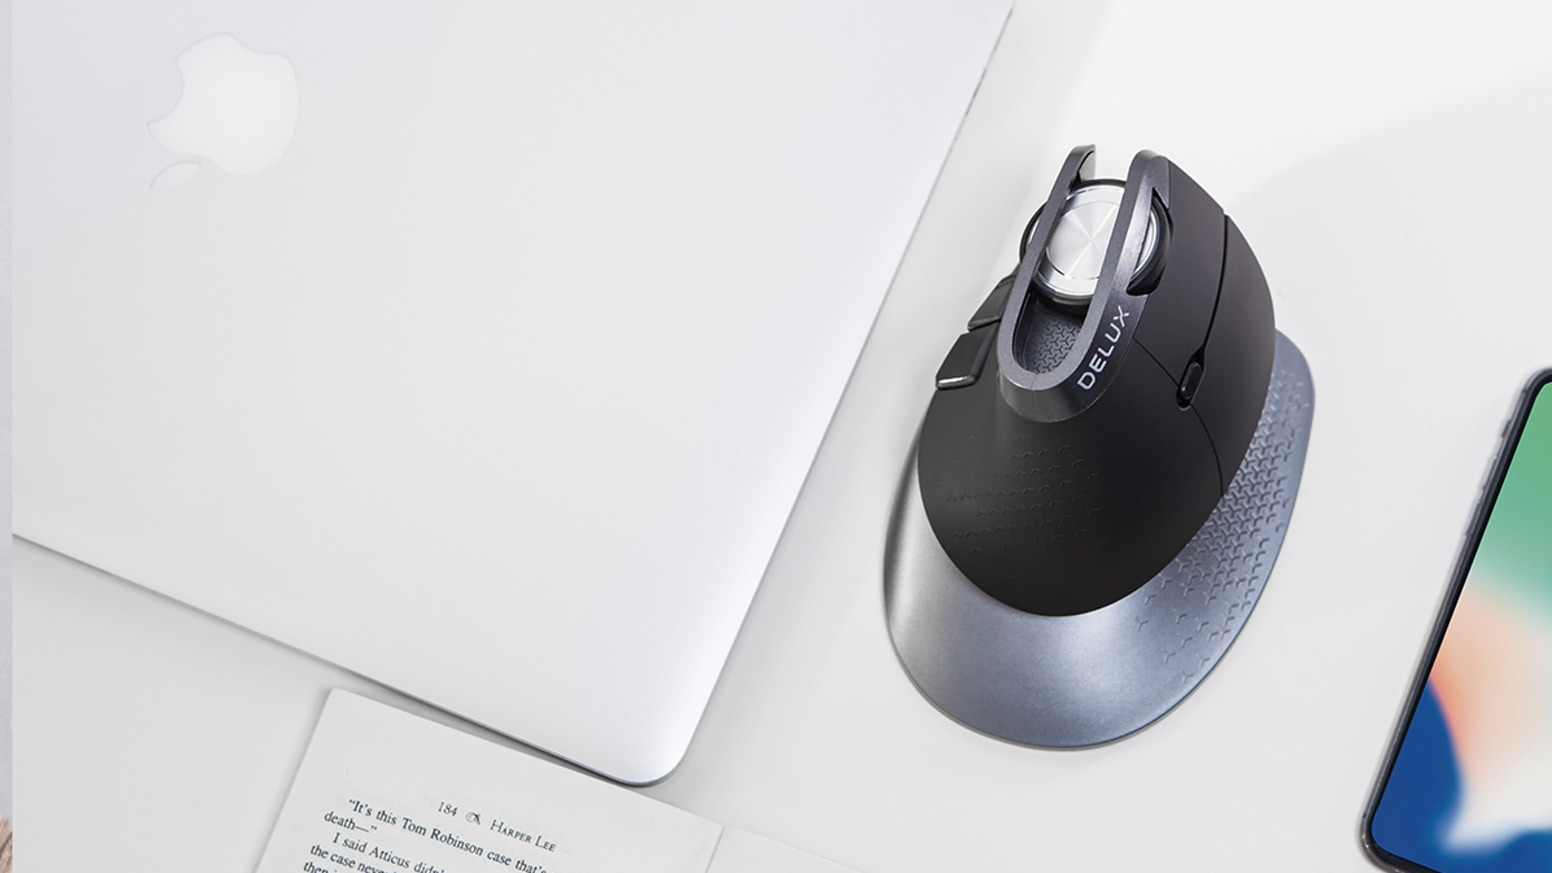 Delux Navee - Best Ergonomic Mouse for Longterm Comfort by Delux